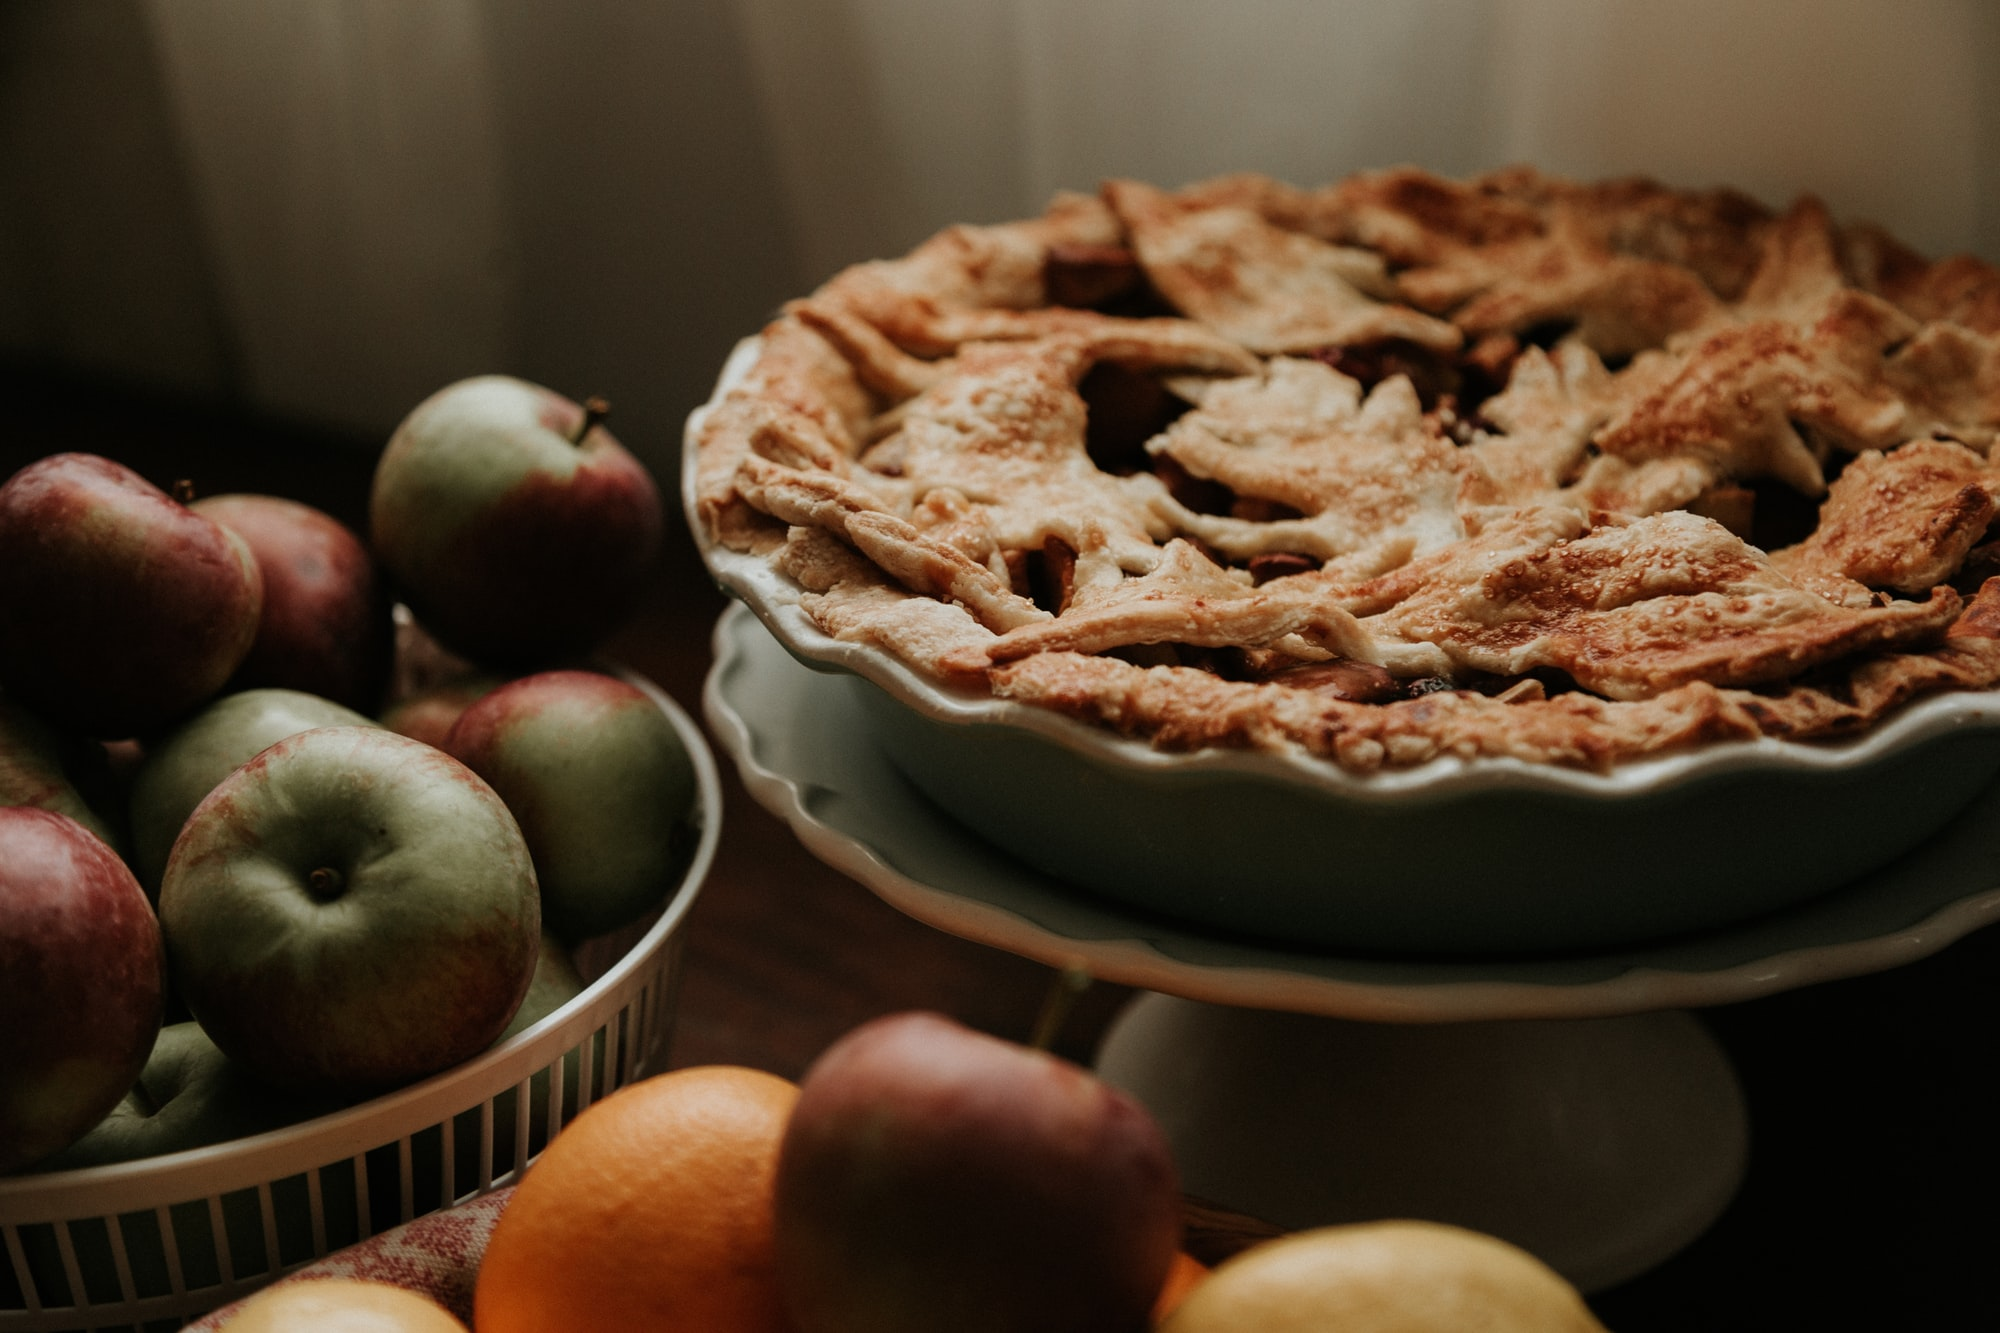 Image of an apple pie and apples.